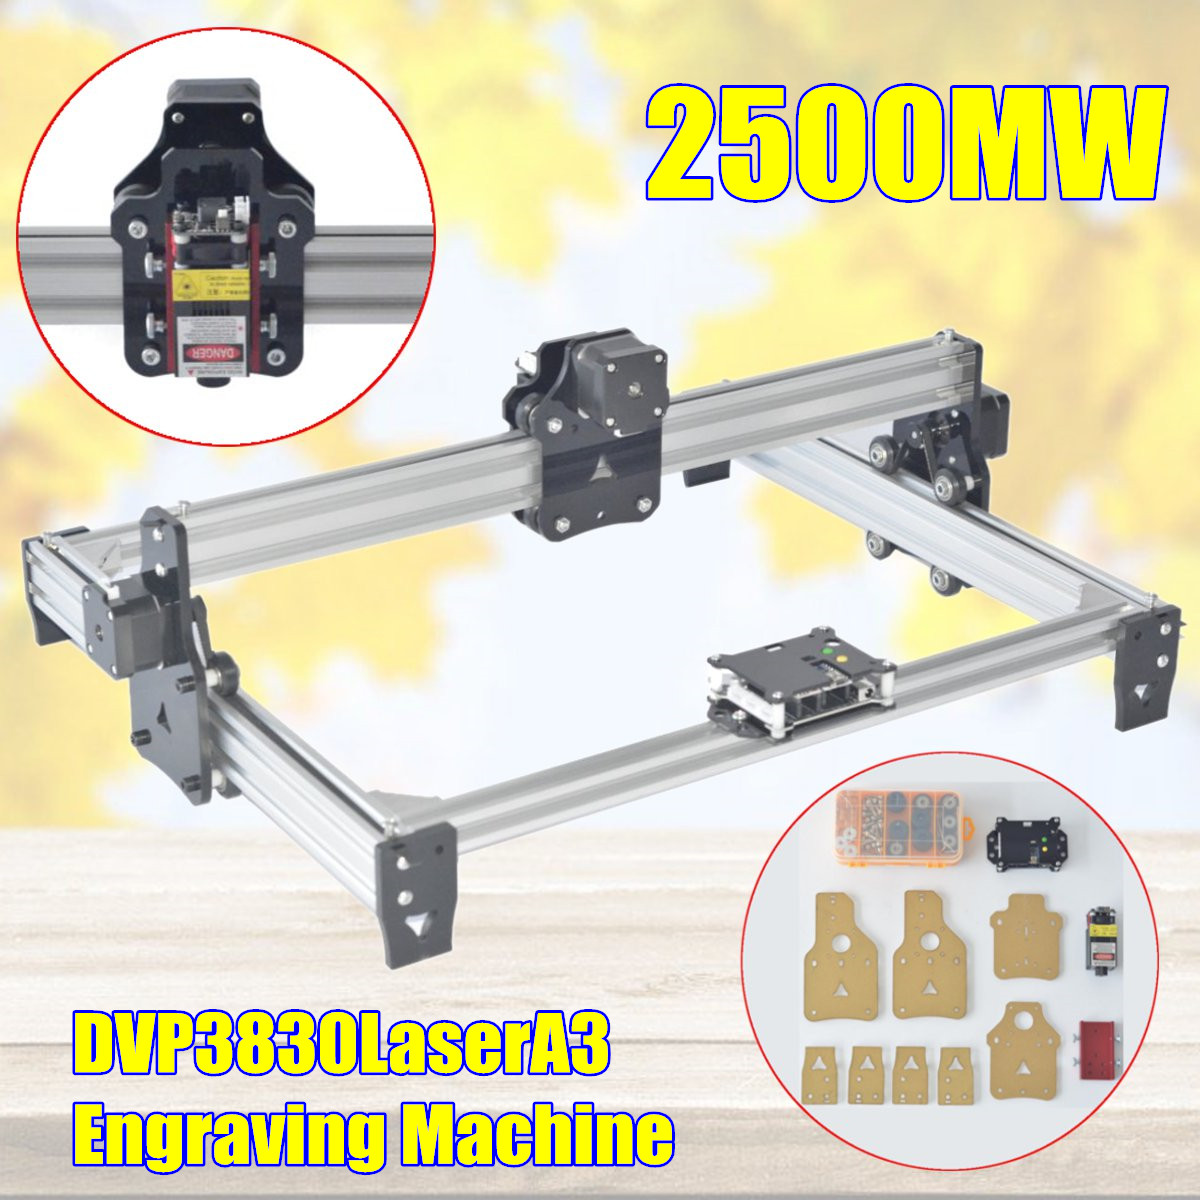 2500mw DVP 3830 Laser A3 Engraving Machine,DIY Laser Engraver Machine,Wood Router,laser cutter,cnc router,best Advanced toys чайник clatronic wks 3625 brombeer